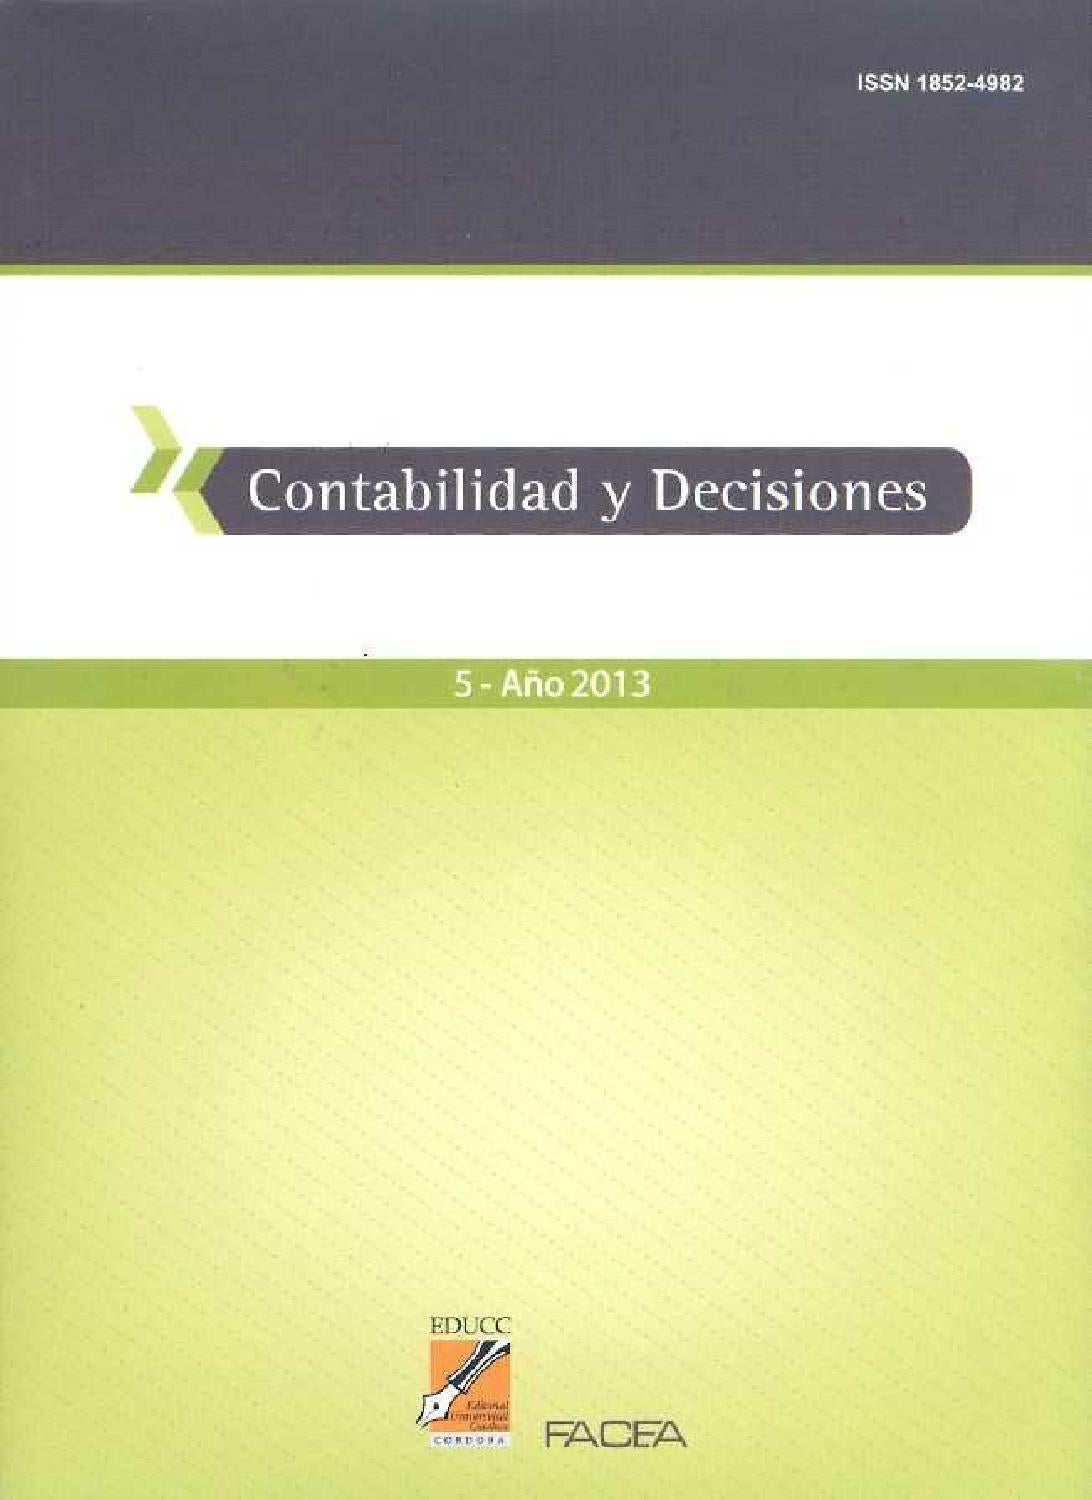 Contabilidad y Decisiones Nro. 5 by contabilidad.decisiones - issuu